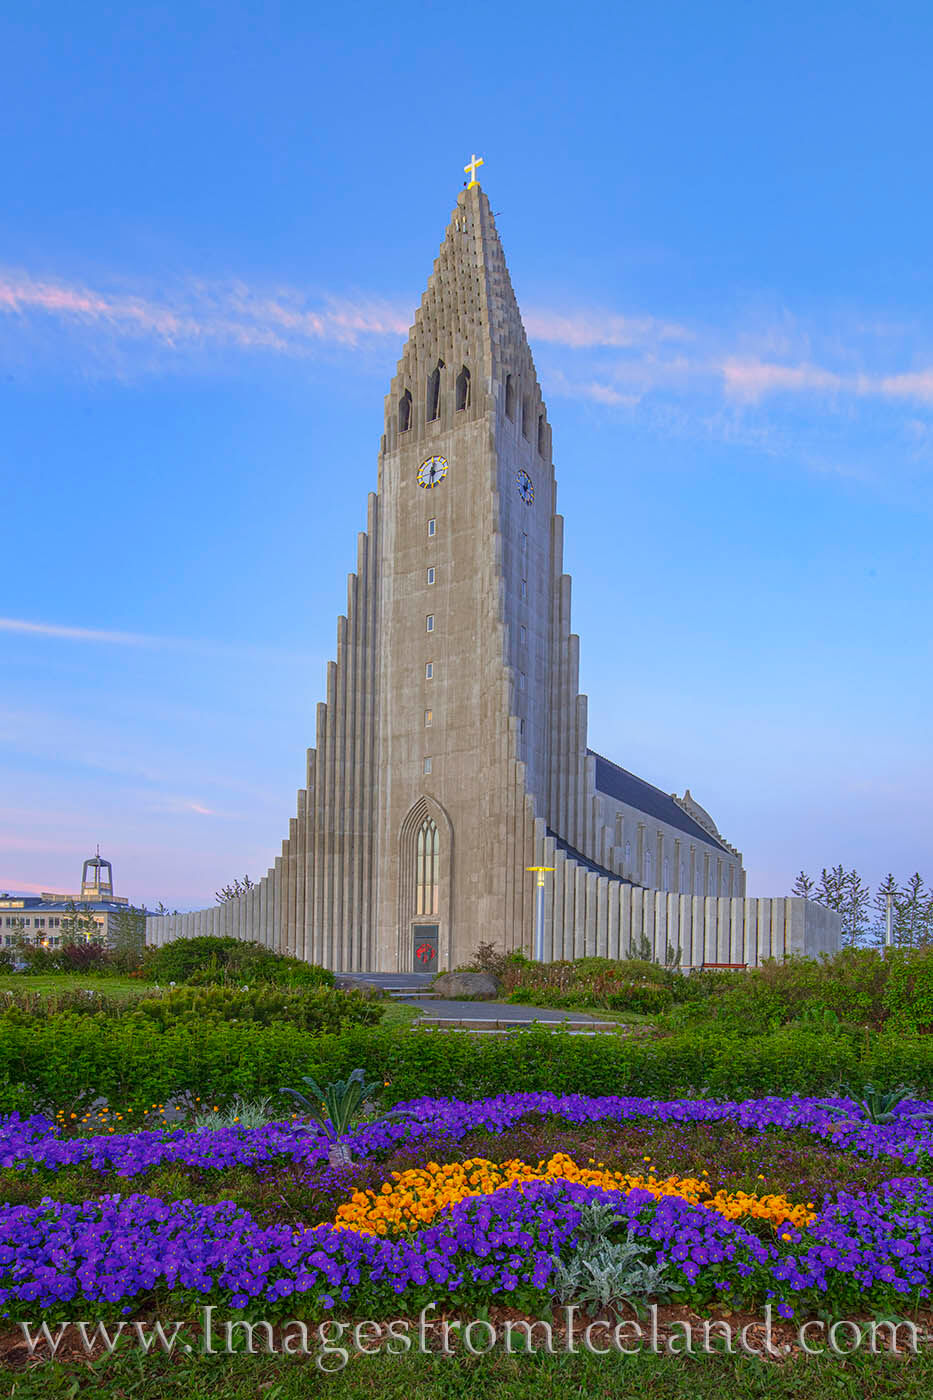 Purple and gold flowers adorn the area around Hallgrímskirkja in Iceland's capital city of Reykjavik. As the tallest church...